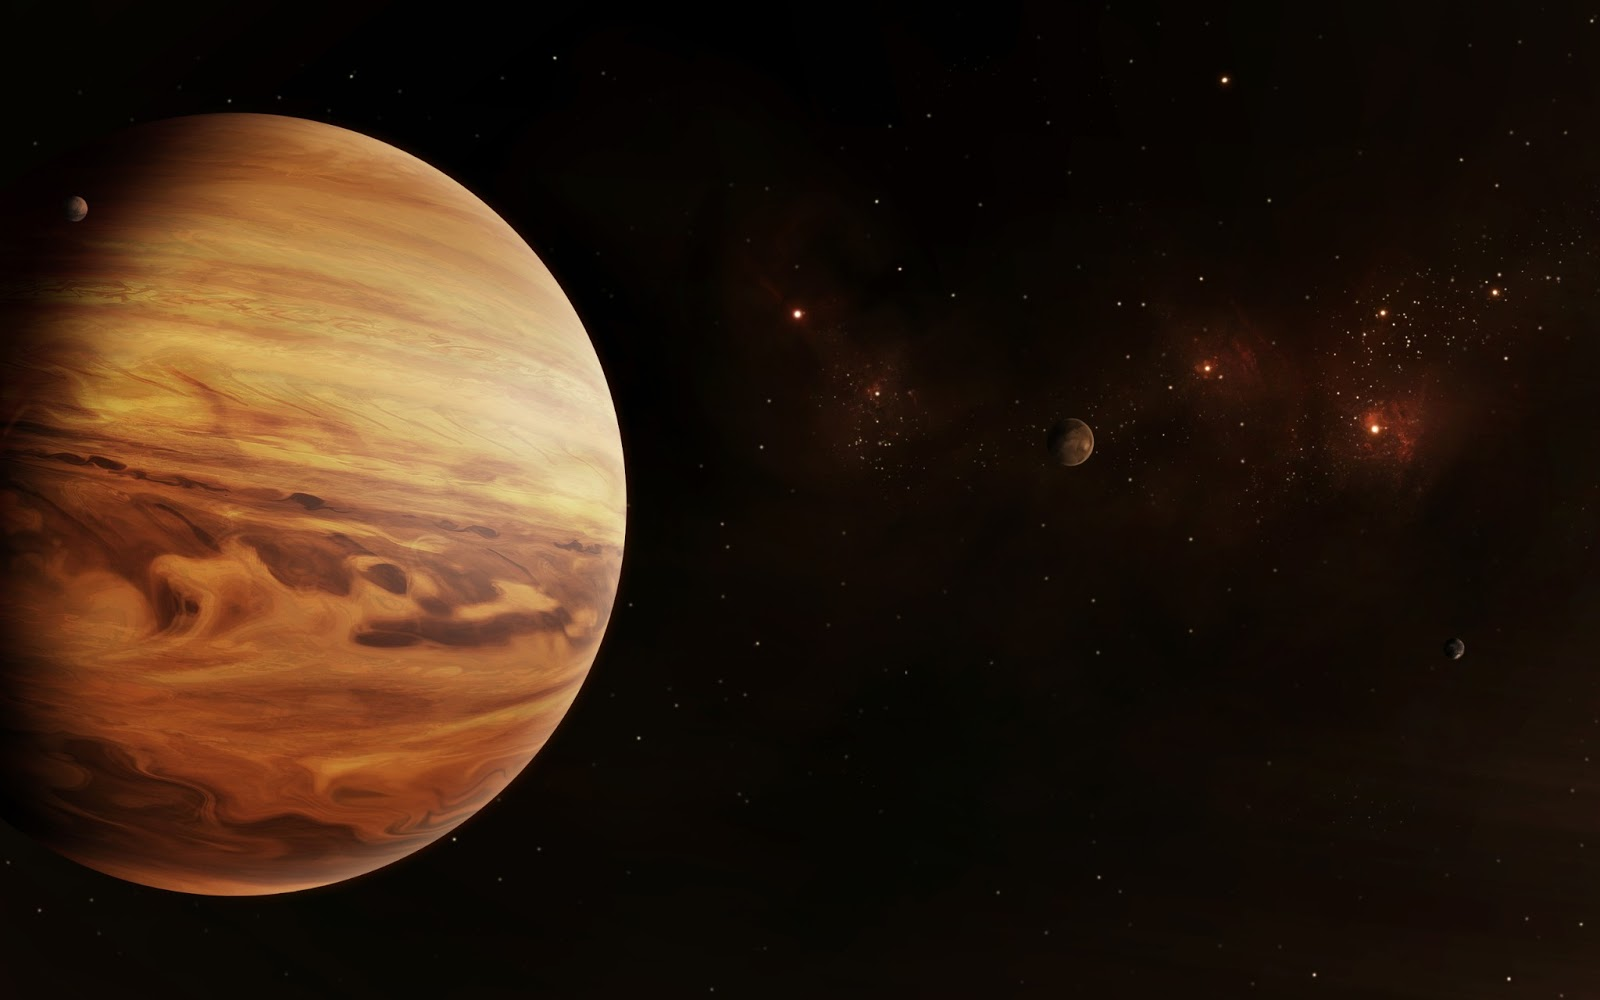 Beyond Earthly Skies Cloud Decks Of Gas Giant Planets